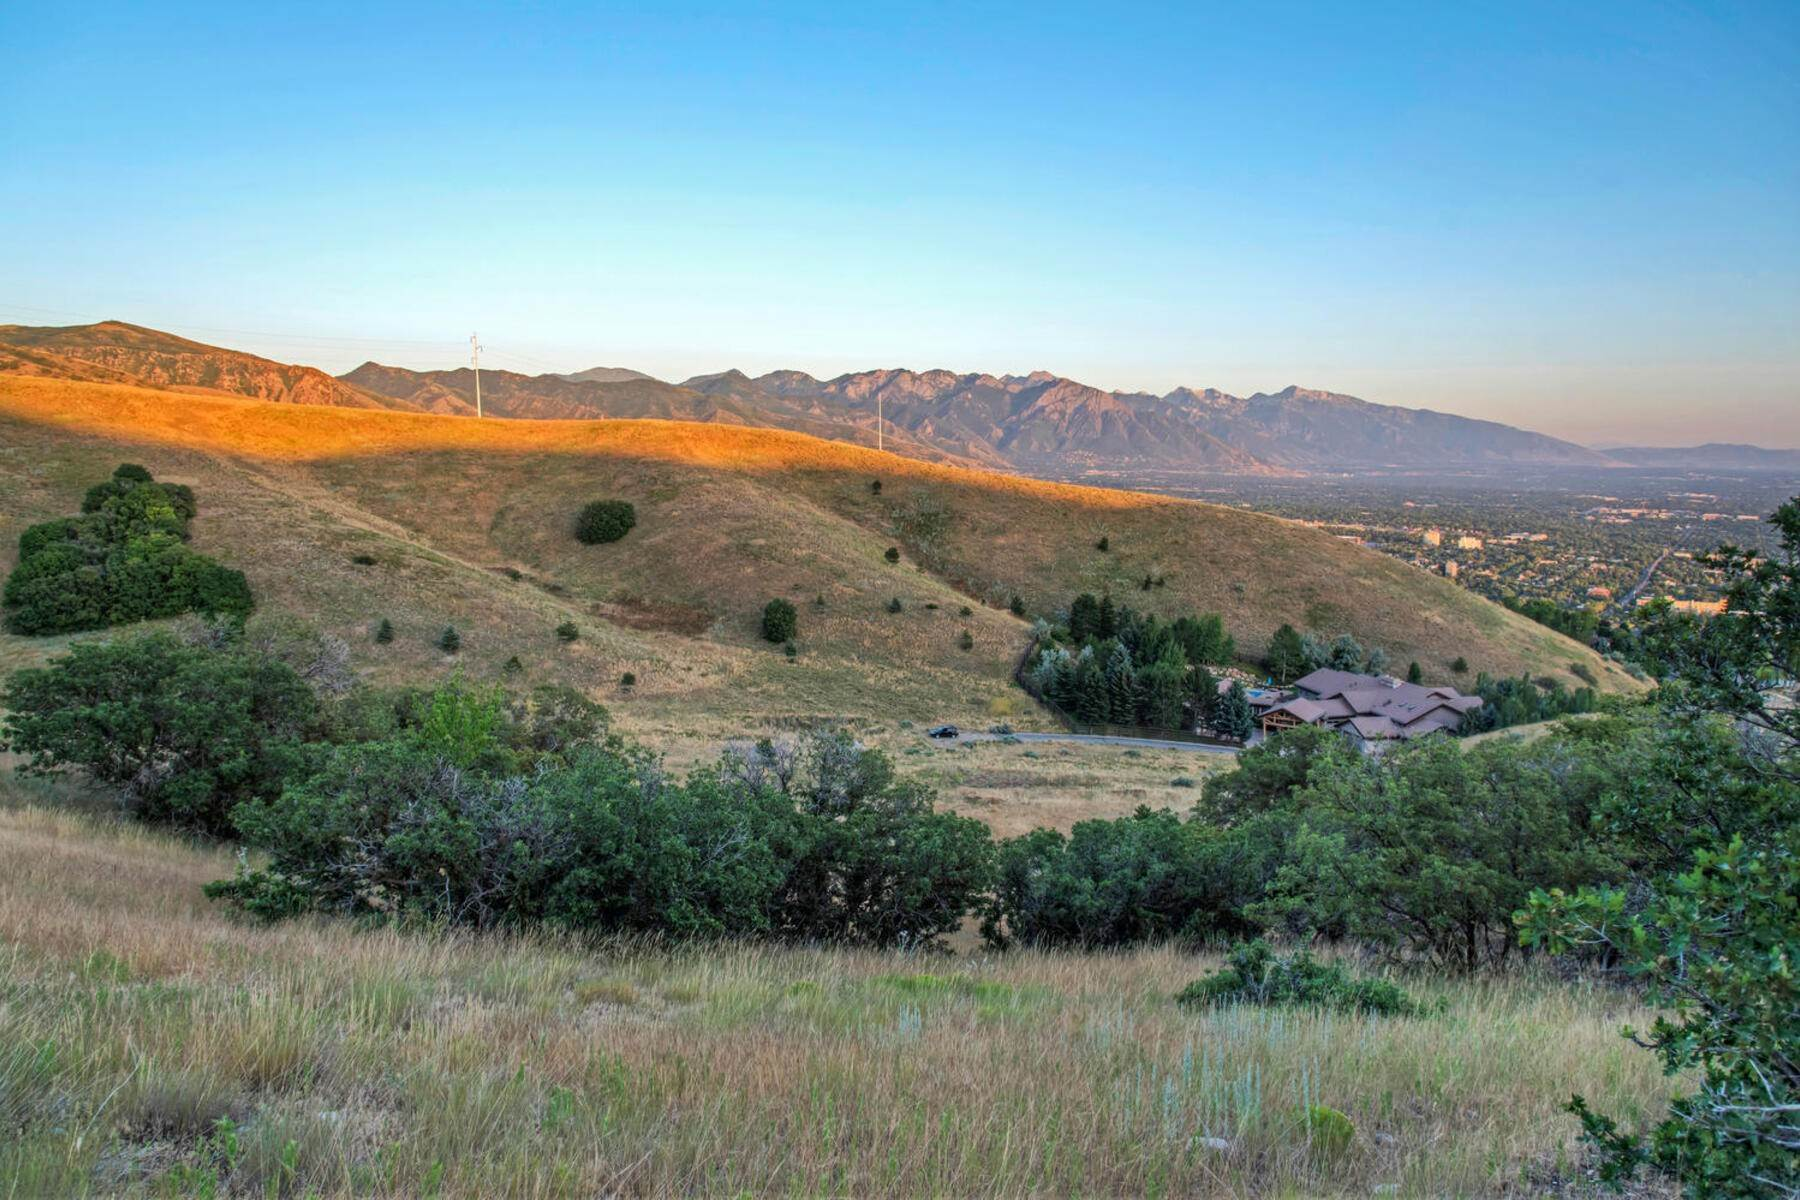 Land at Fabulous Opportunity 929 Northvale Way Salt Lake City, Utah 84103 United States